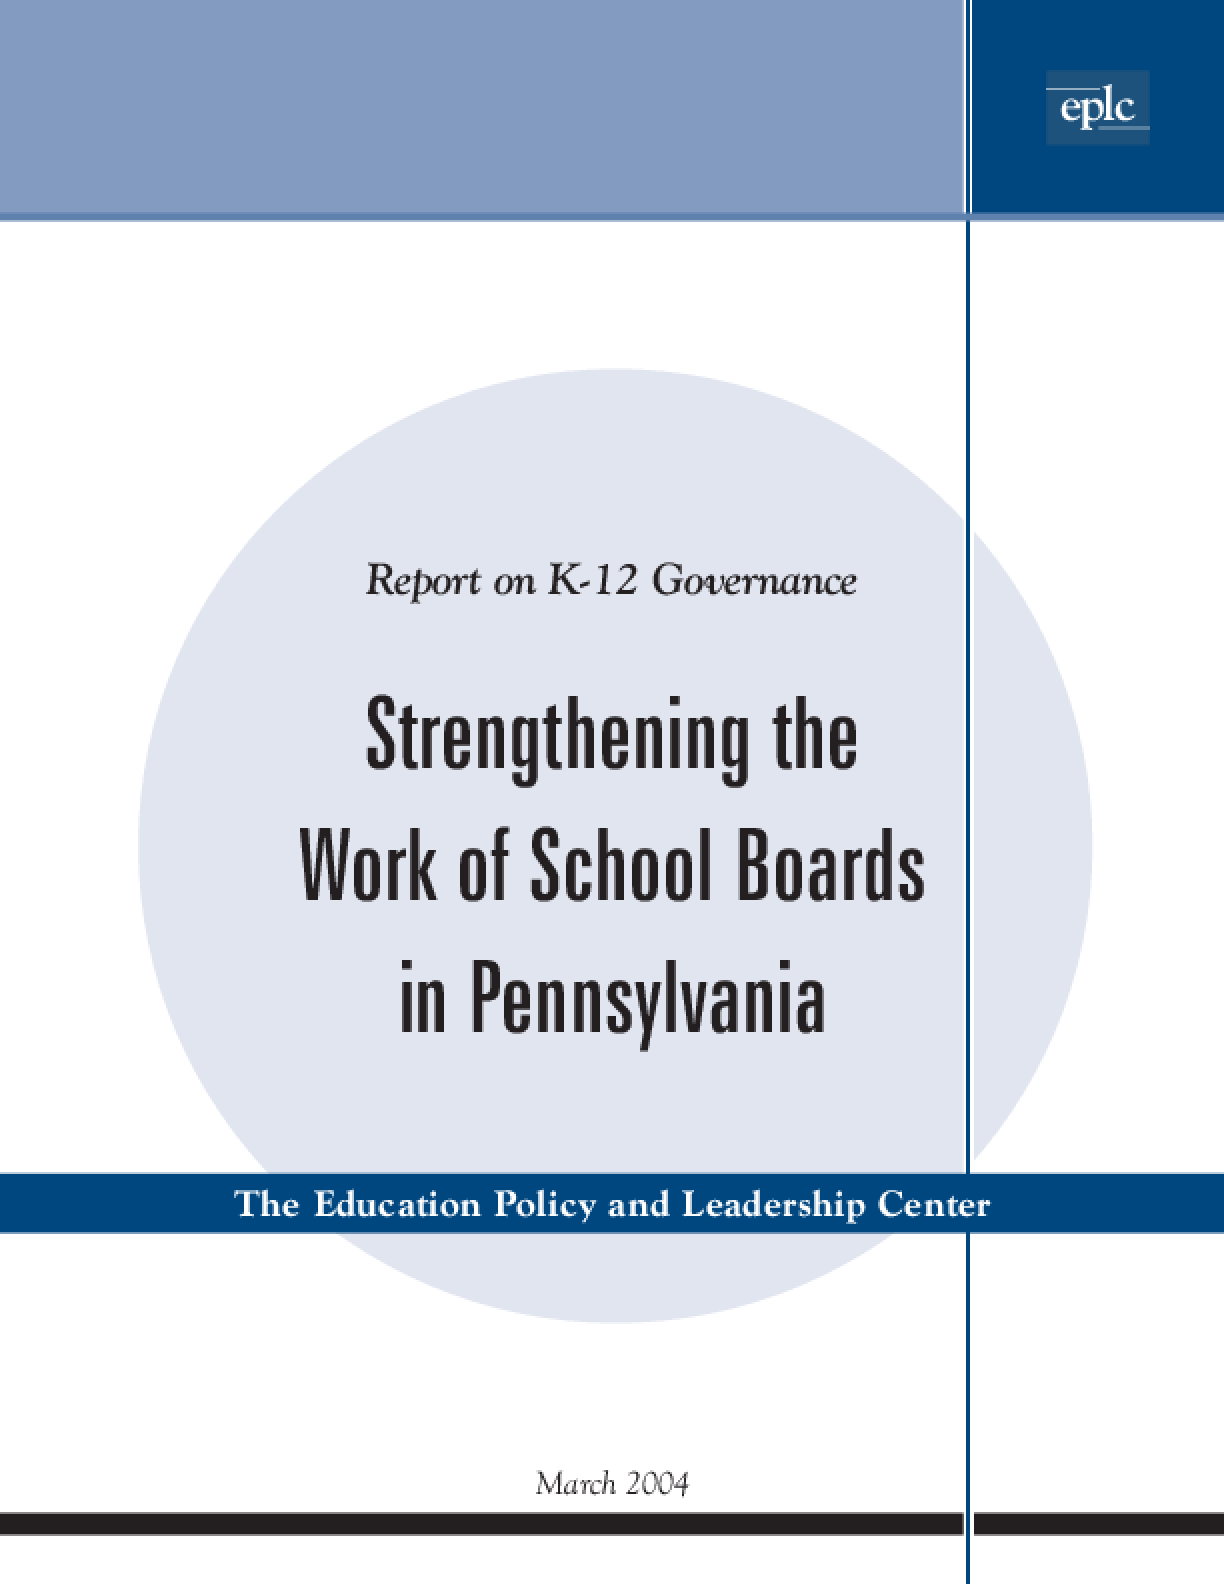 Strengthening the Work of School Boards in Pennsylvania